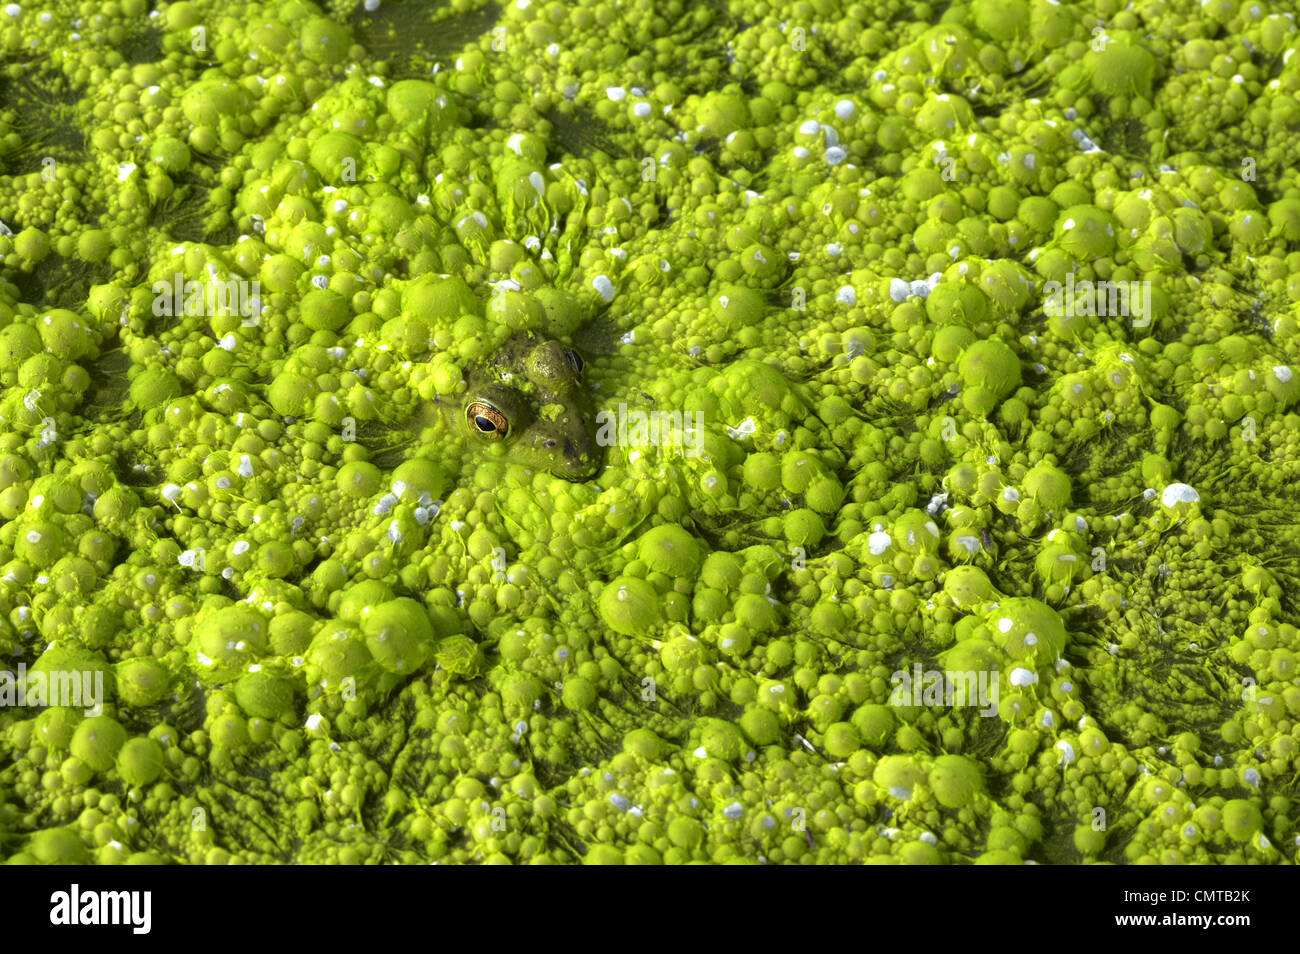 Close-up of frog in slimy green pond, Georgian Bay, Ontario, Canada Stock Photo